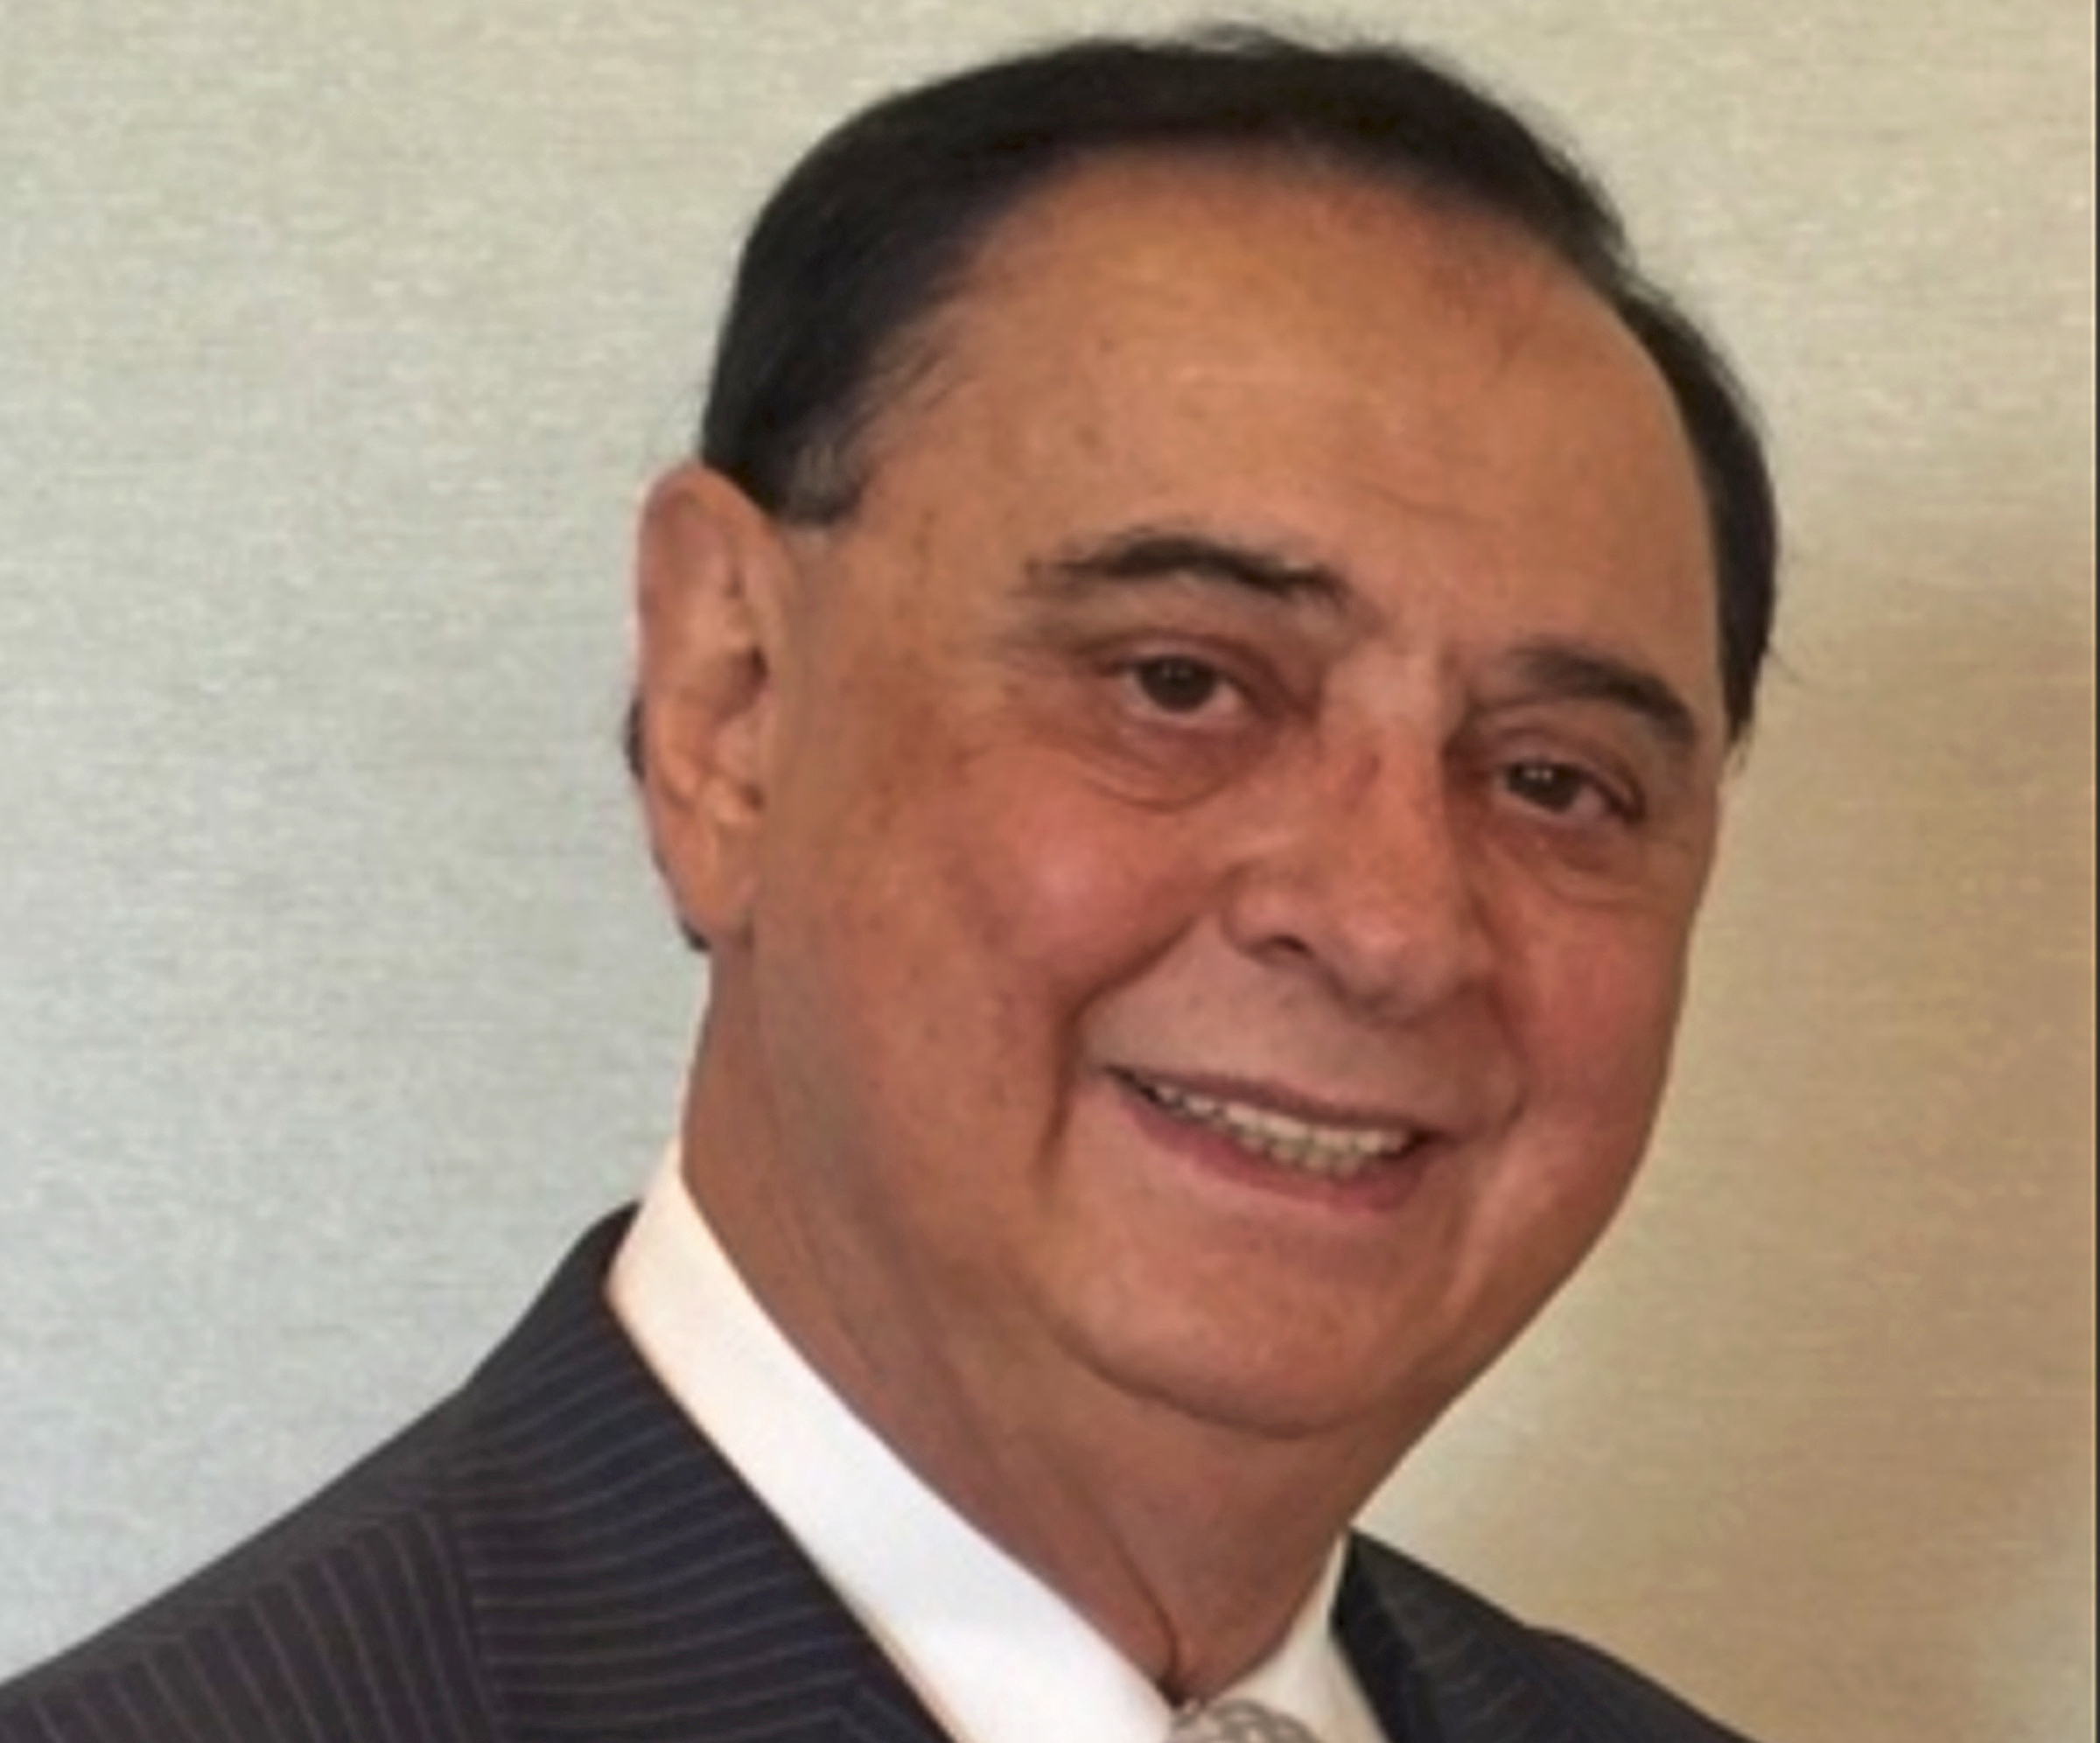 Luis Rossi, who bought La Raza in 1983 and sold it in 2003, died Dec. 26.